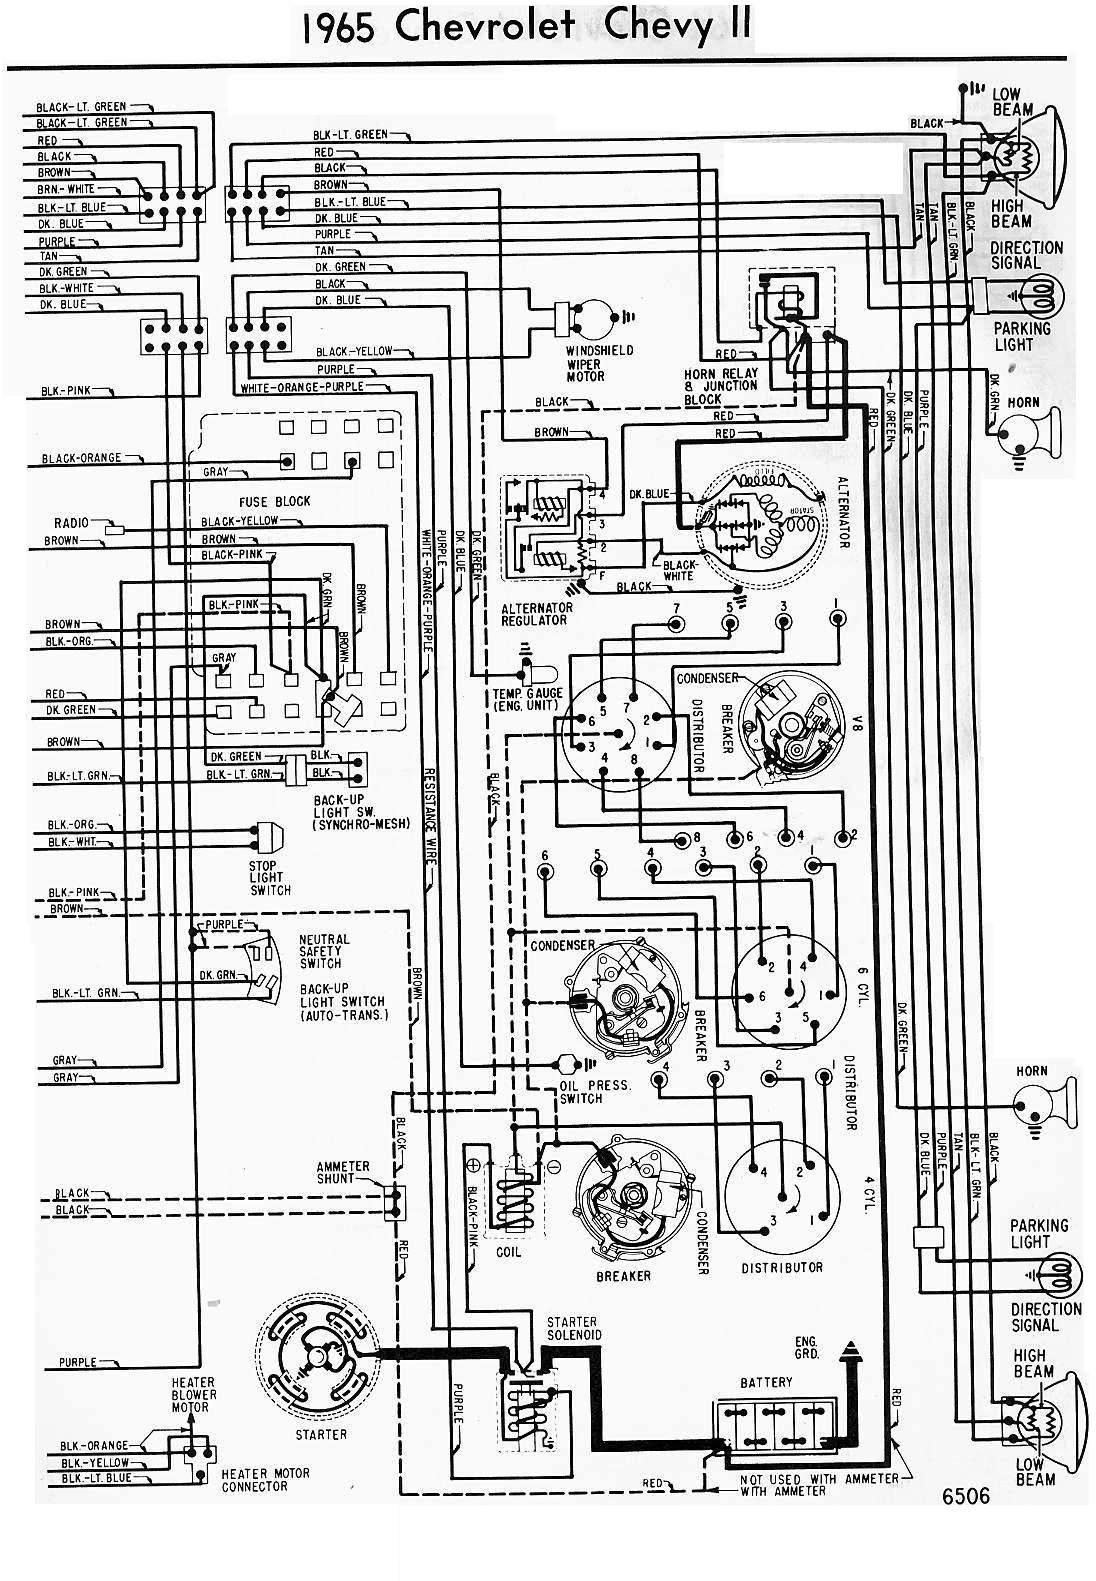 1965 chevy wiring diagram GwtSdvU diagrams chevy starter wiring diagram chevy starter wiring 1965 chevy c10 wiring diagram at reclaimingppi.co